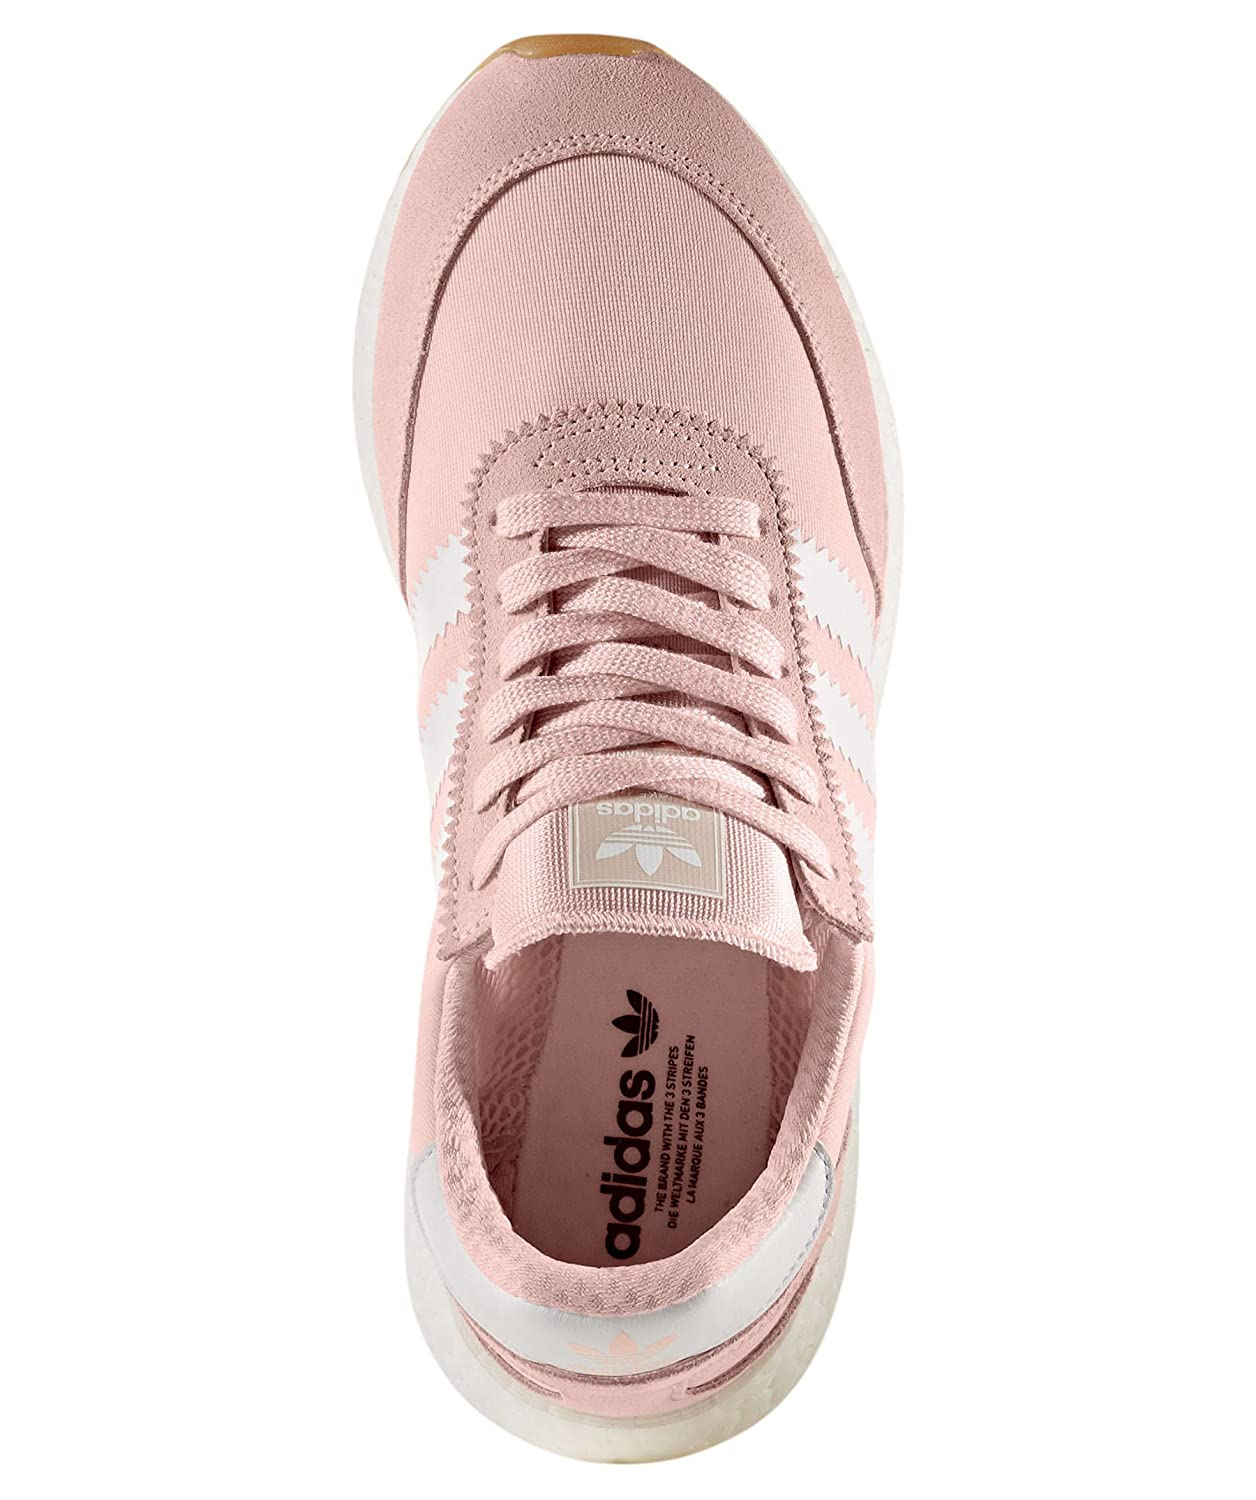 adidas Iniki Runner W Icey Pink White Gum 42  Amazon.co.uk  Shoes   Bags 3adc7cecb